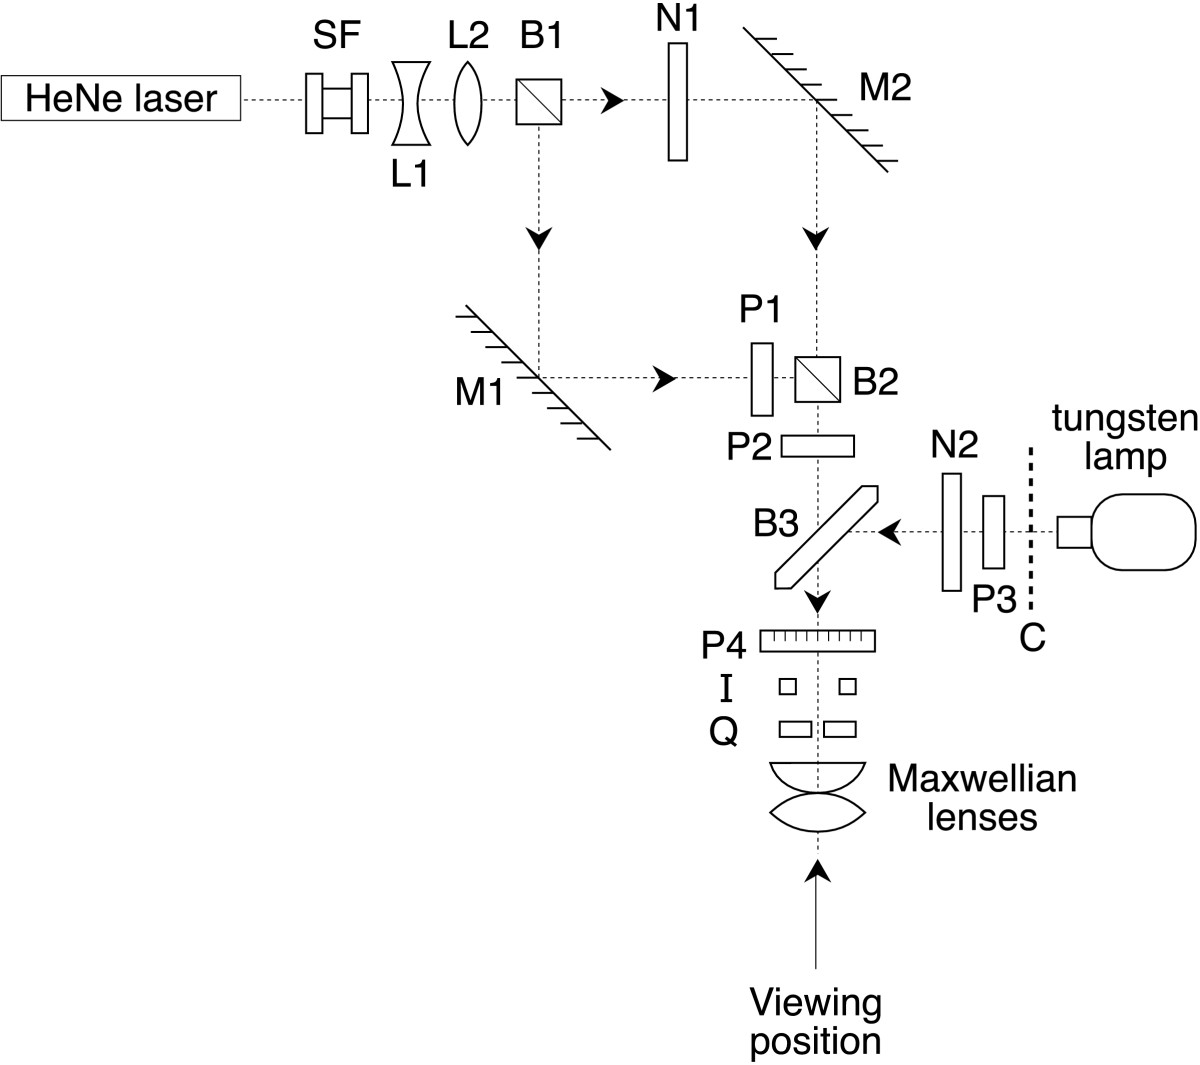 http://static-content.springer.com/image/art%3A10.1186%2F1471-2415-5-22/MediaObjects/12886_2005_Article_55_Fig1_HTML.jpg